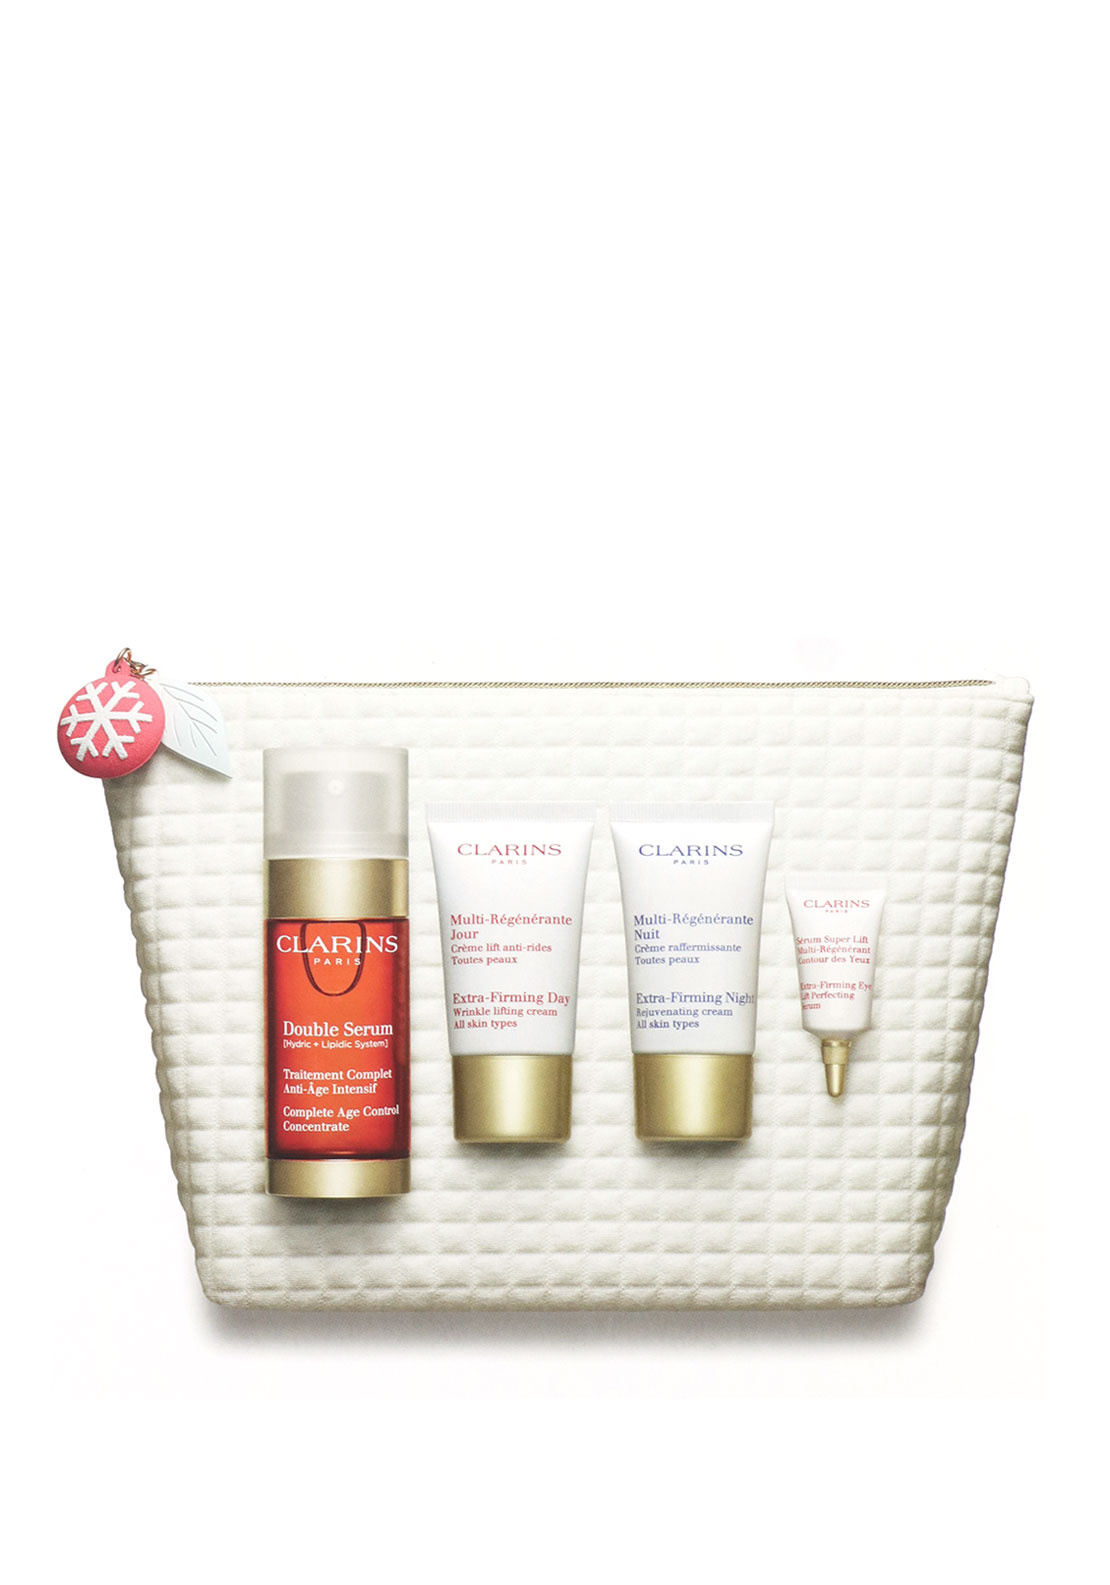 Clarins Christmas Firming & Anti-Wrinkle Experts Gift Set